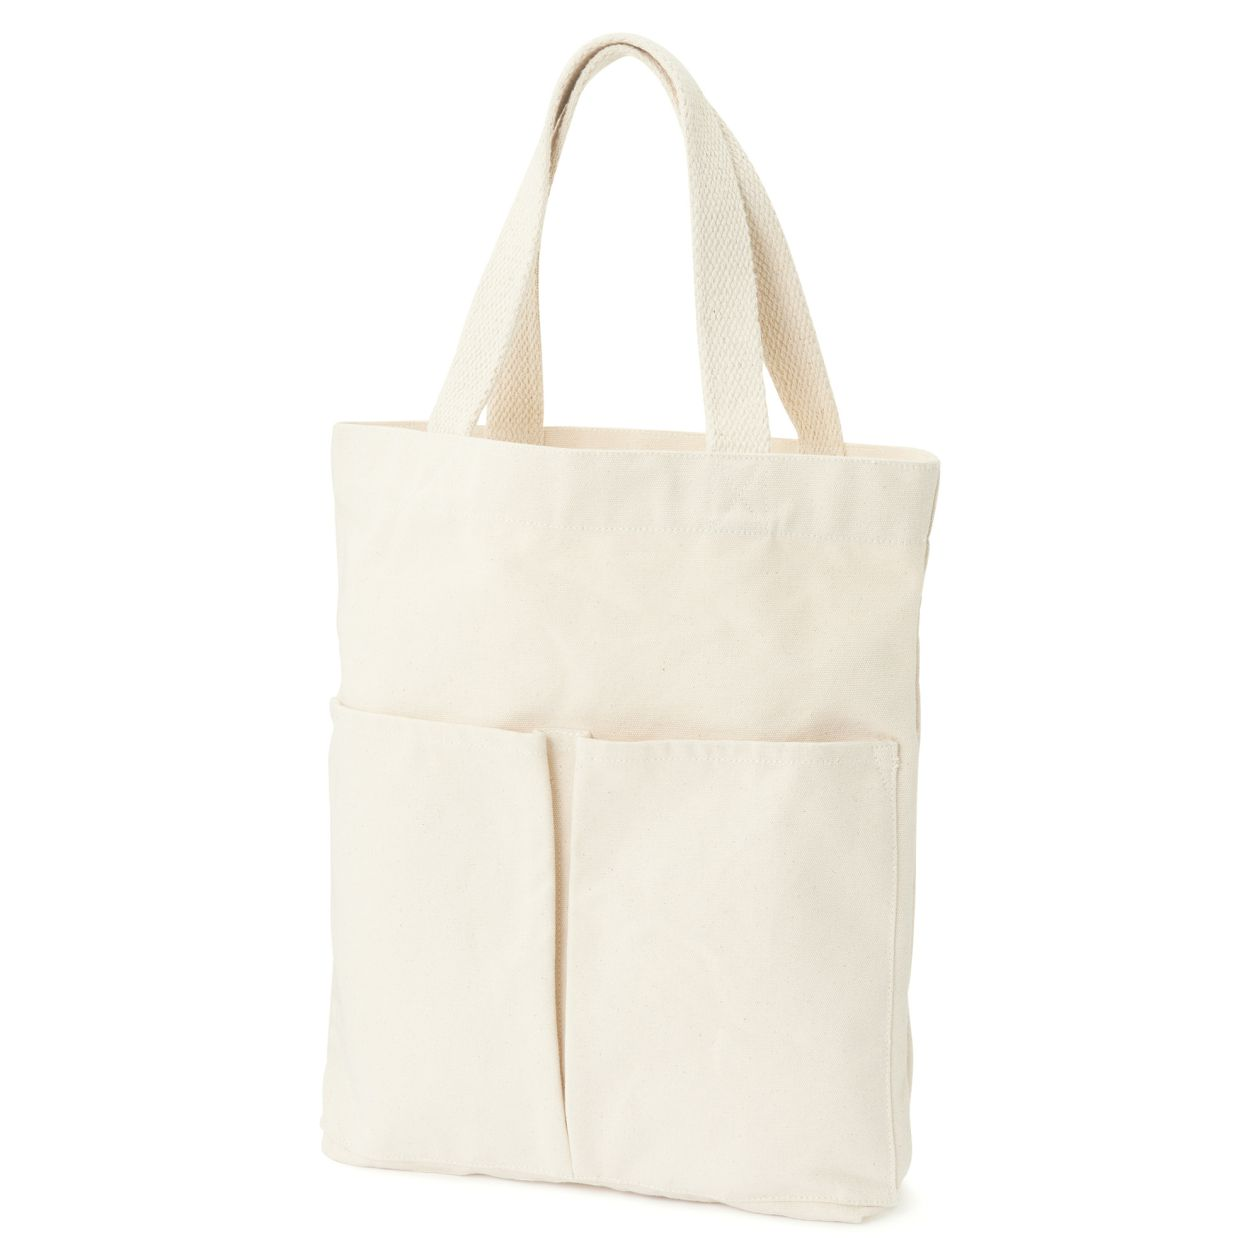 Organic Cotton Vertical Type My Tote Bag